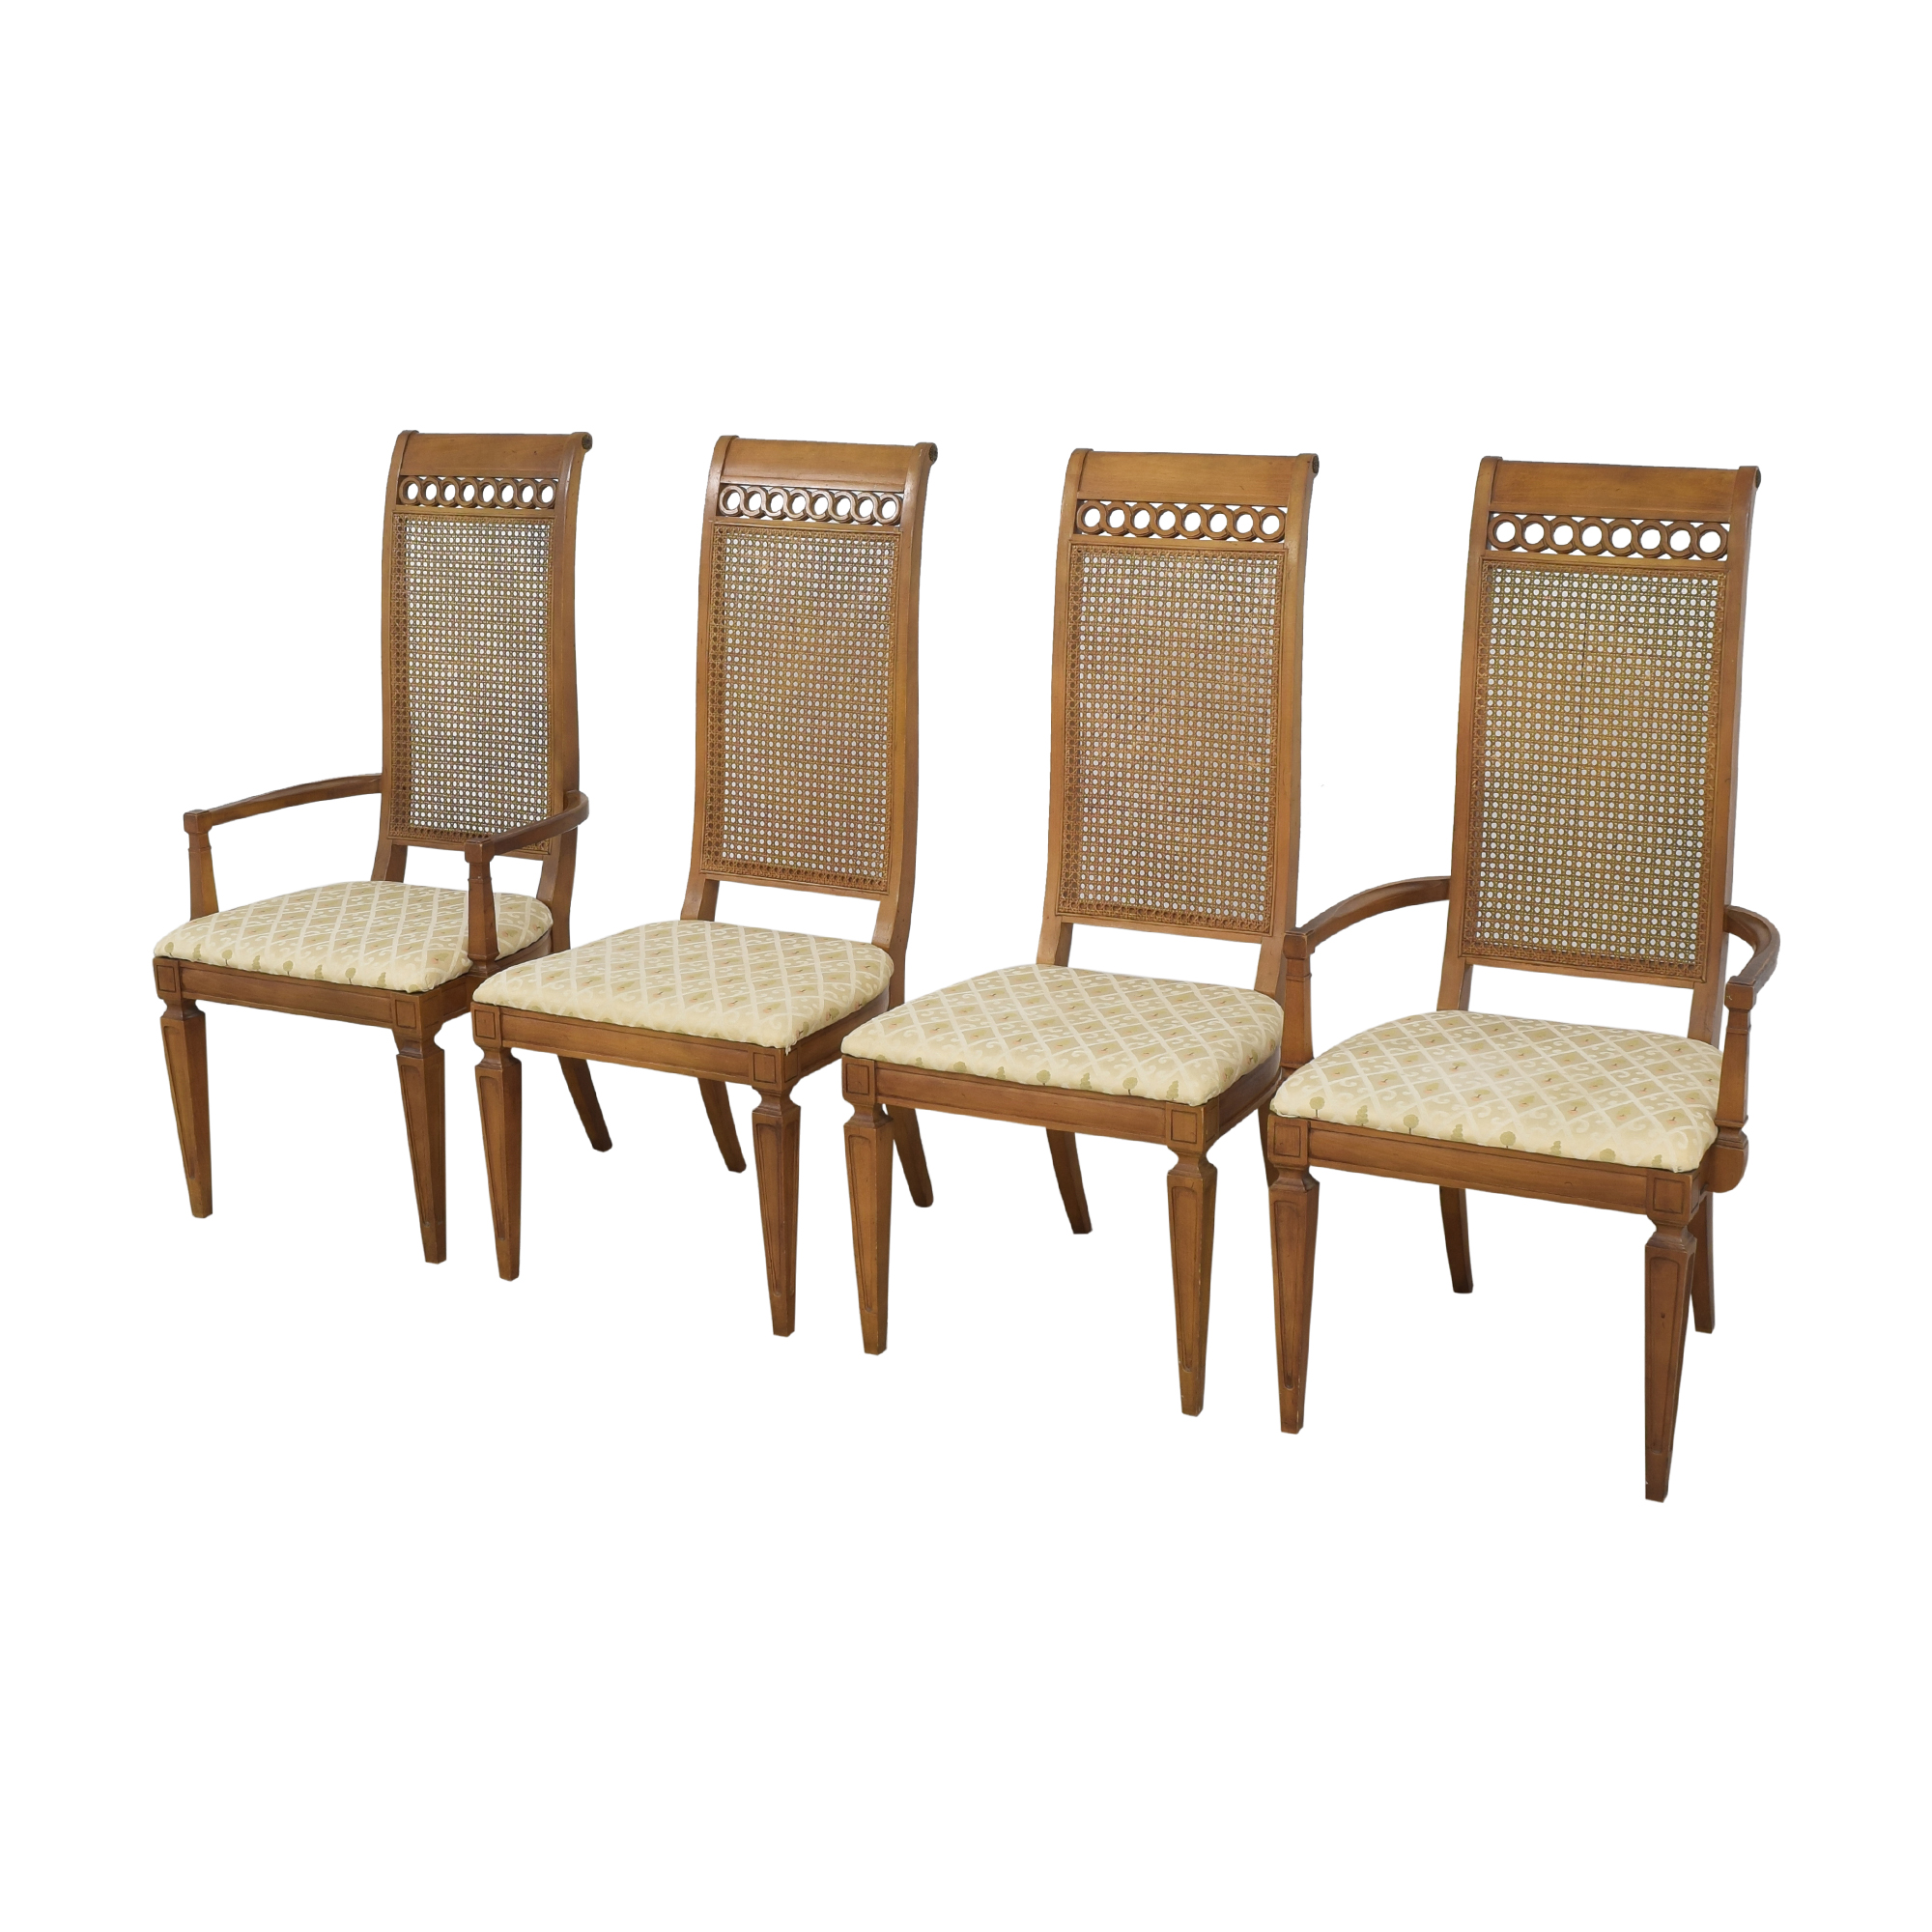 Thomasville Thomasville Bellini Collection Dining Chairs brown and beige